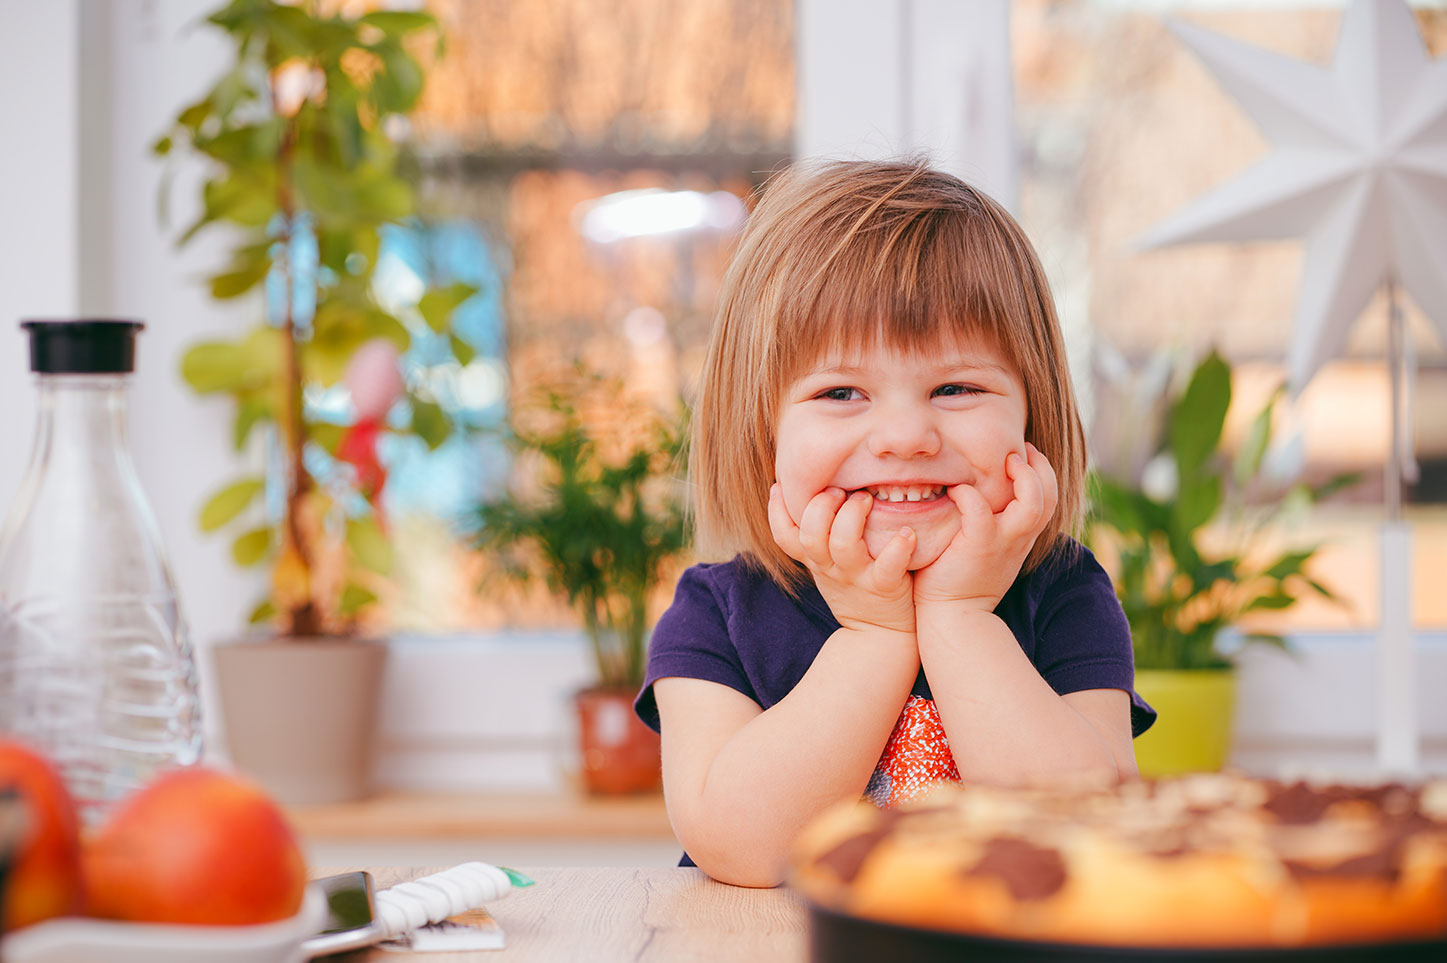 smiling toddler in kitchen with blurred pizza